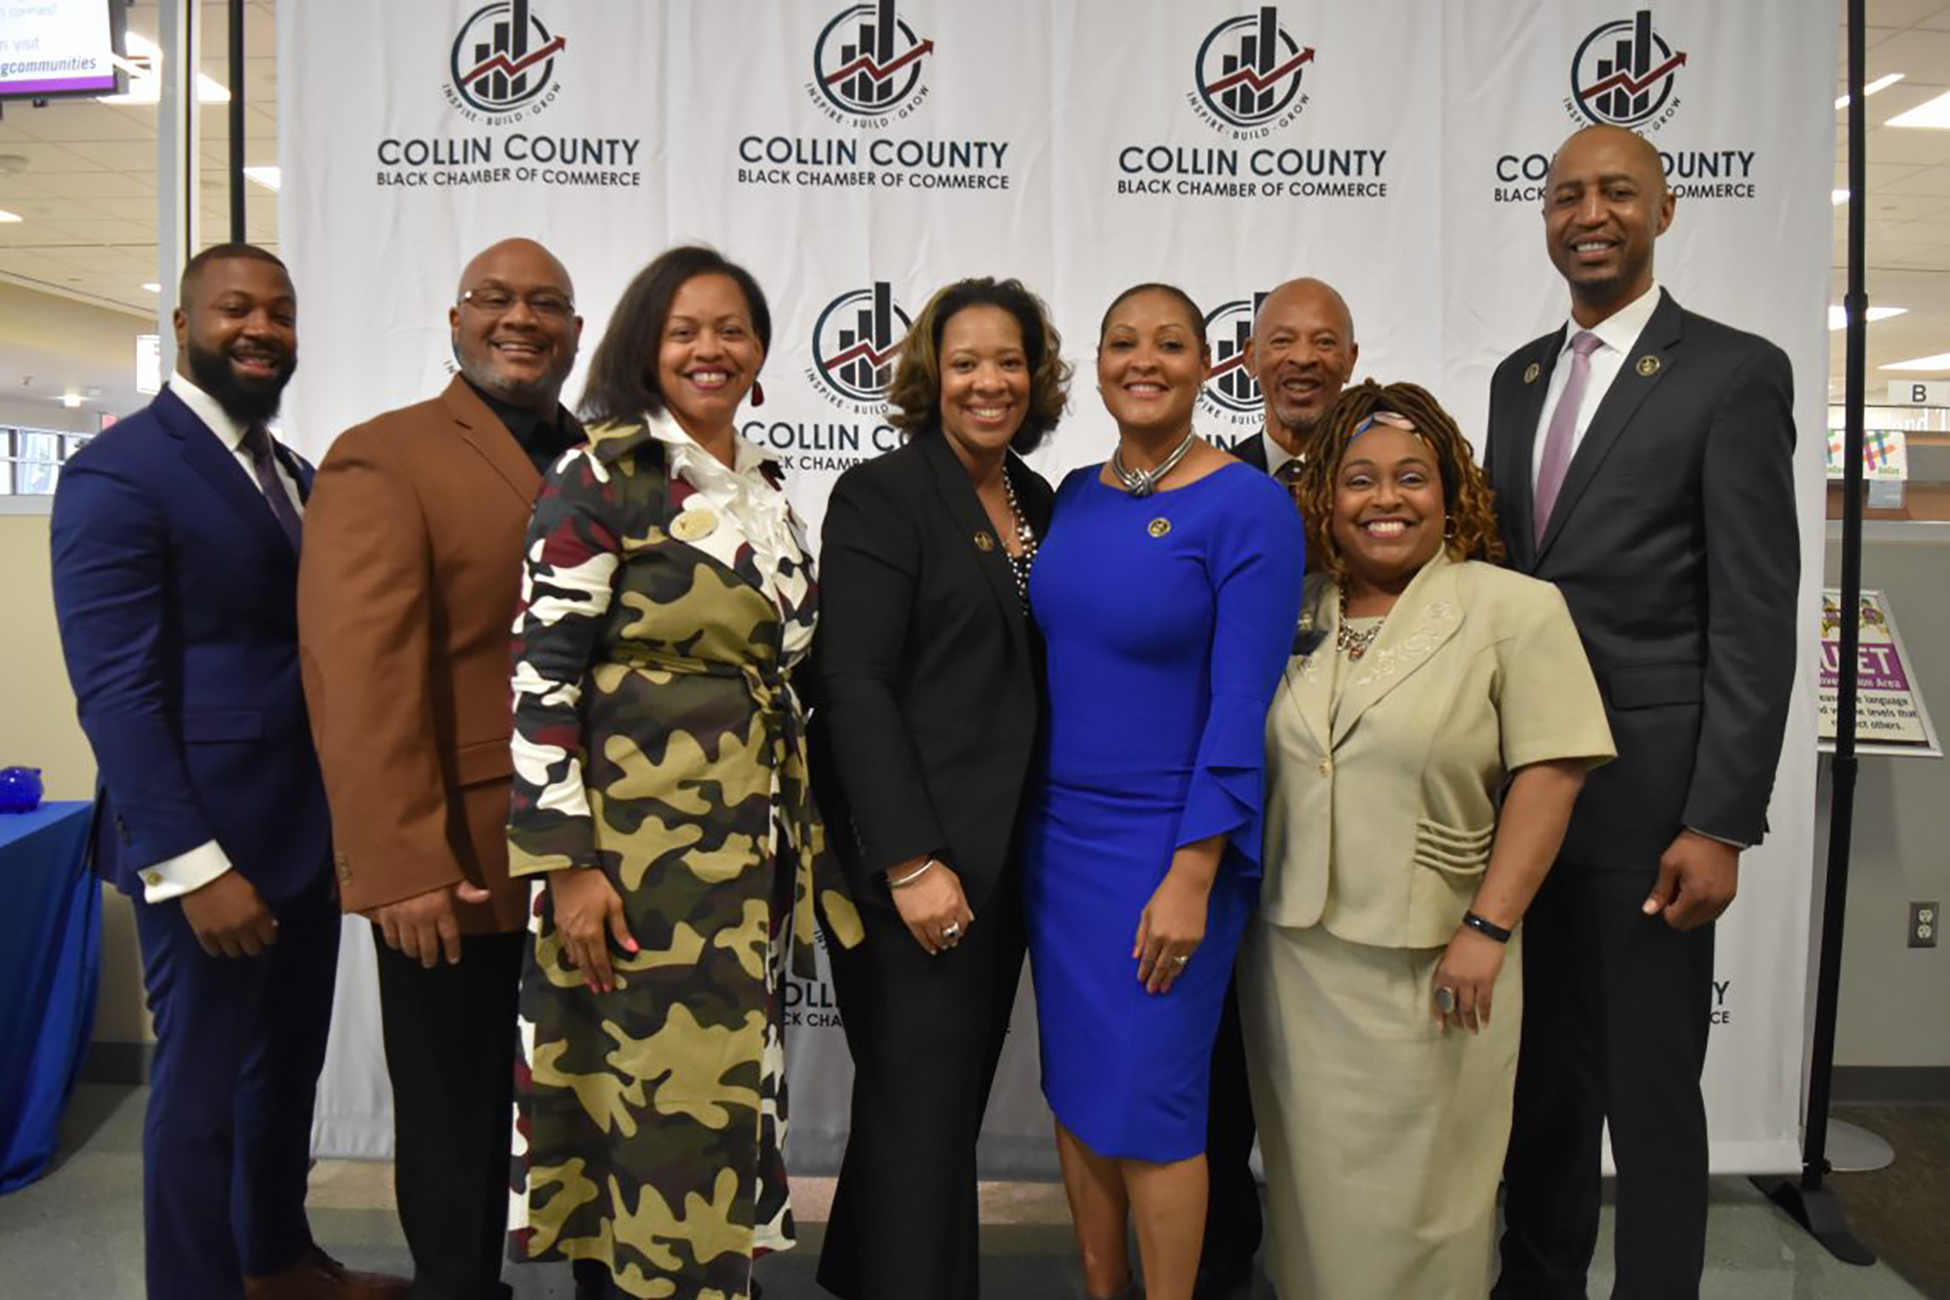 The Colin County Black Chamber of Commerce, group photo